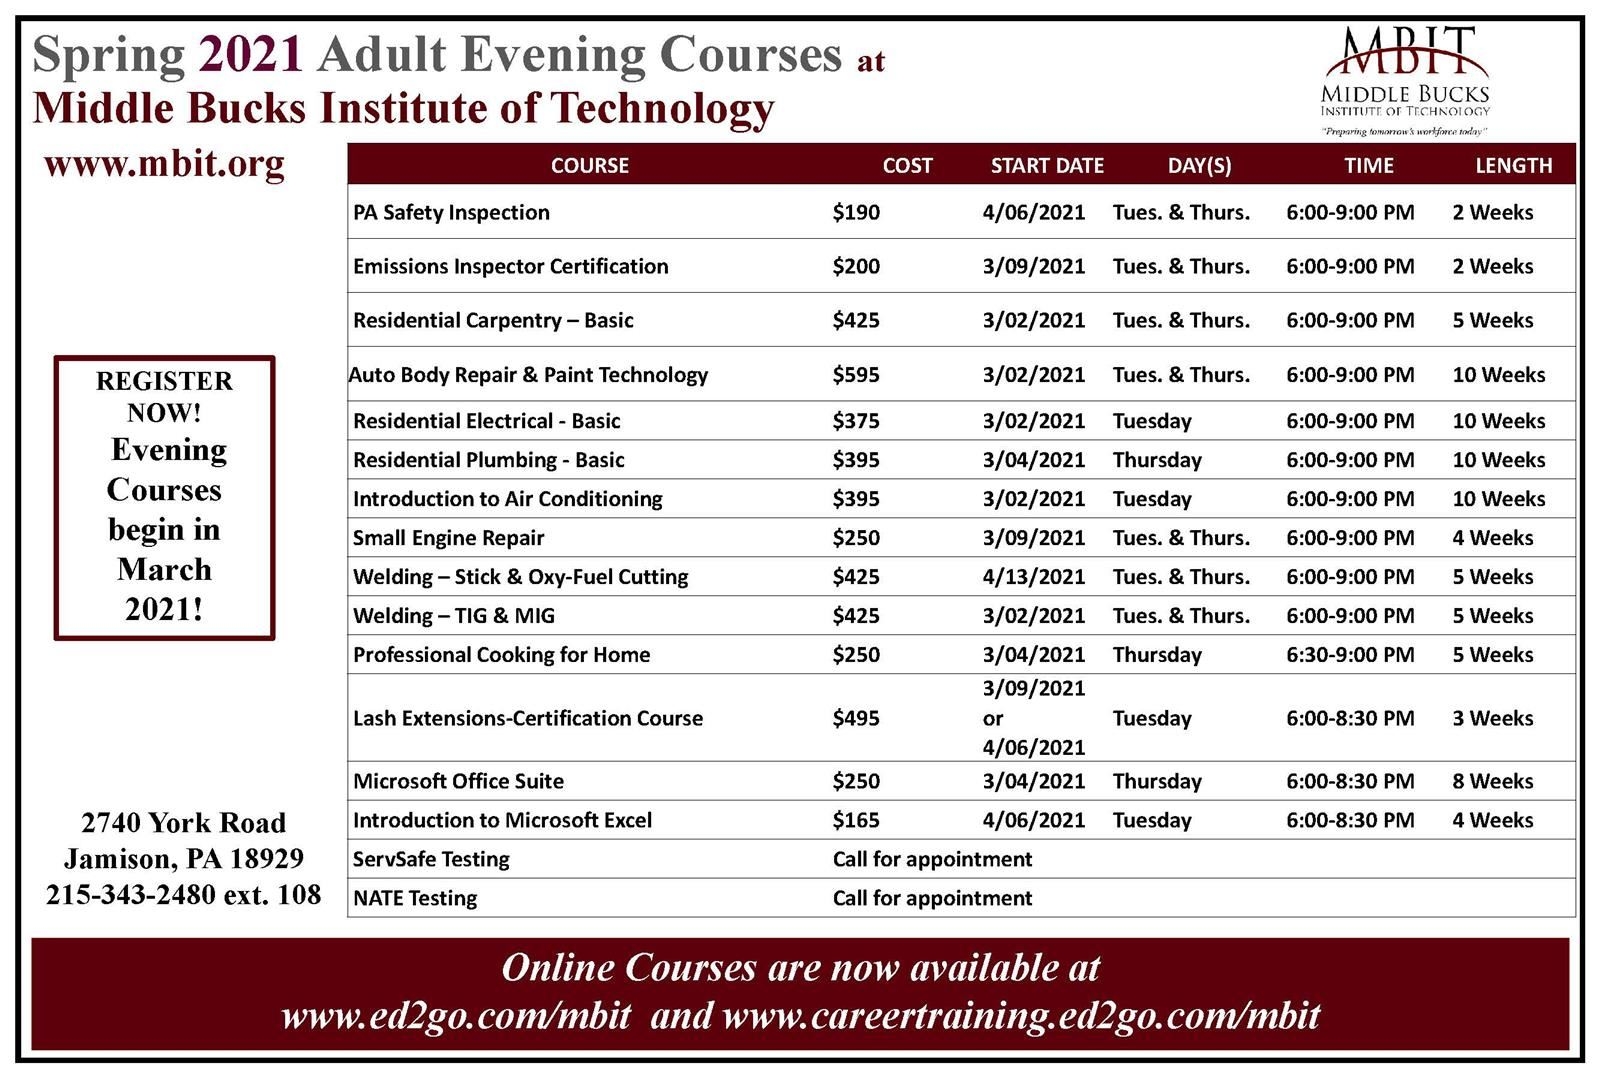 Spring 2021 Adult Evening Courses have been posted